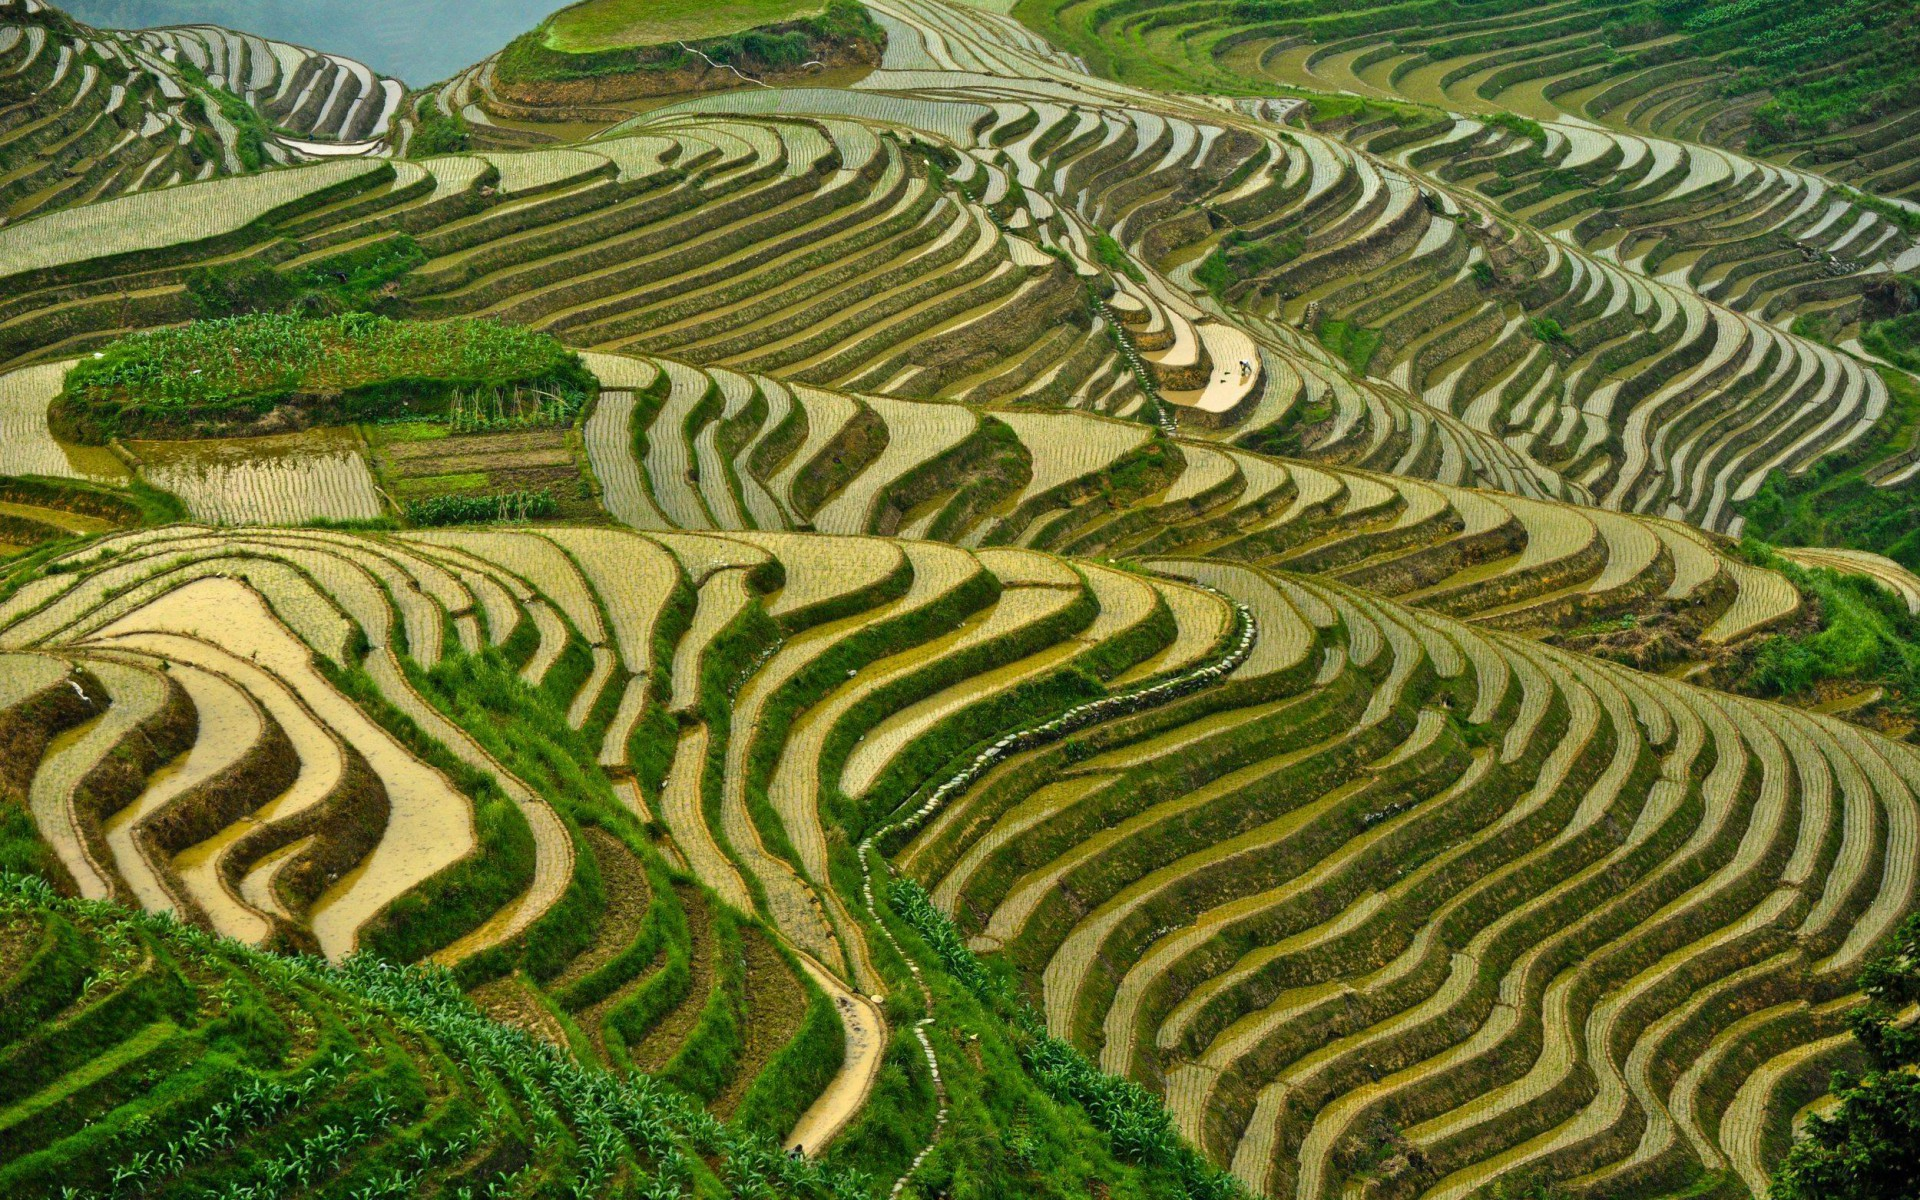 Longji reis terrassen china hintergrundbilder longji for Define terrace farming